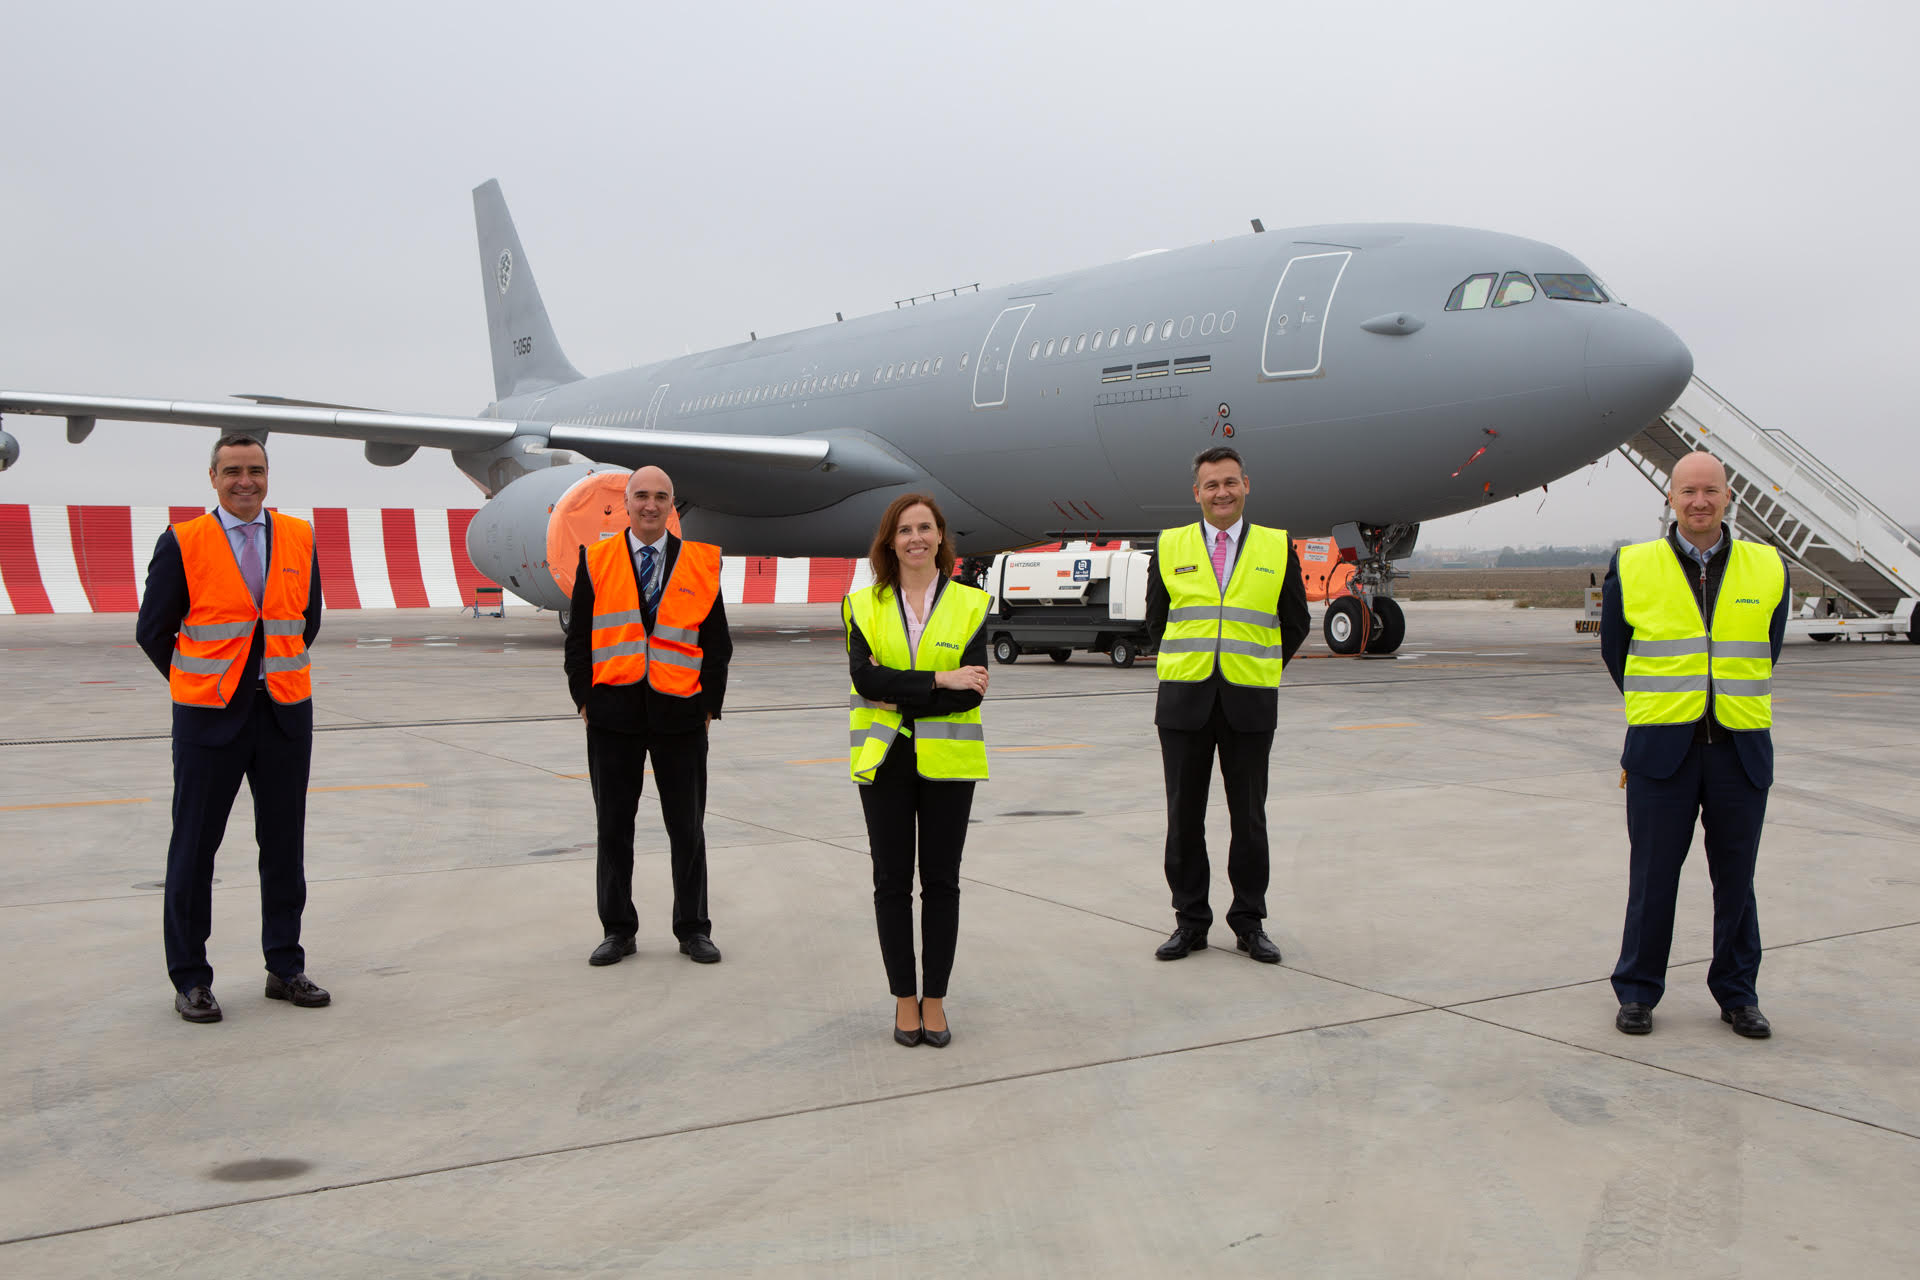 Copyright: Airbus DS MMF aircraft T-056 with representatives from AIRBUS DS, OCCAR and NSPA before take-off in Getafe / Spain. Angel SAIZ PADILLA (NSPA), Jose Alfonso MONGE ALCOL (OCCAR), Cristina AGULIAR GRIEDER ( AIRBUS DS, MRTT & Head of Airbus Derivatives), Rodrigo CAMINERO GARCIA (AIRBUS DS) and Adolfo DEL HOYO BARAHONA (AIRBUS DS), from left to right.